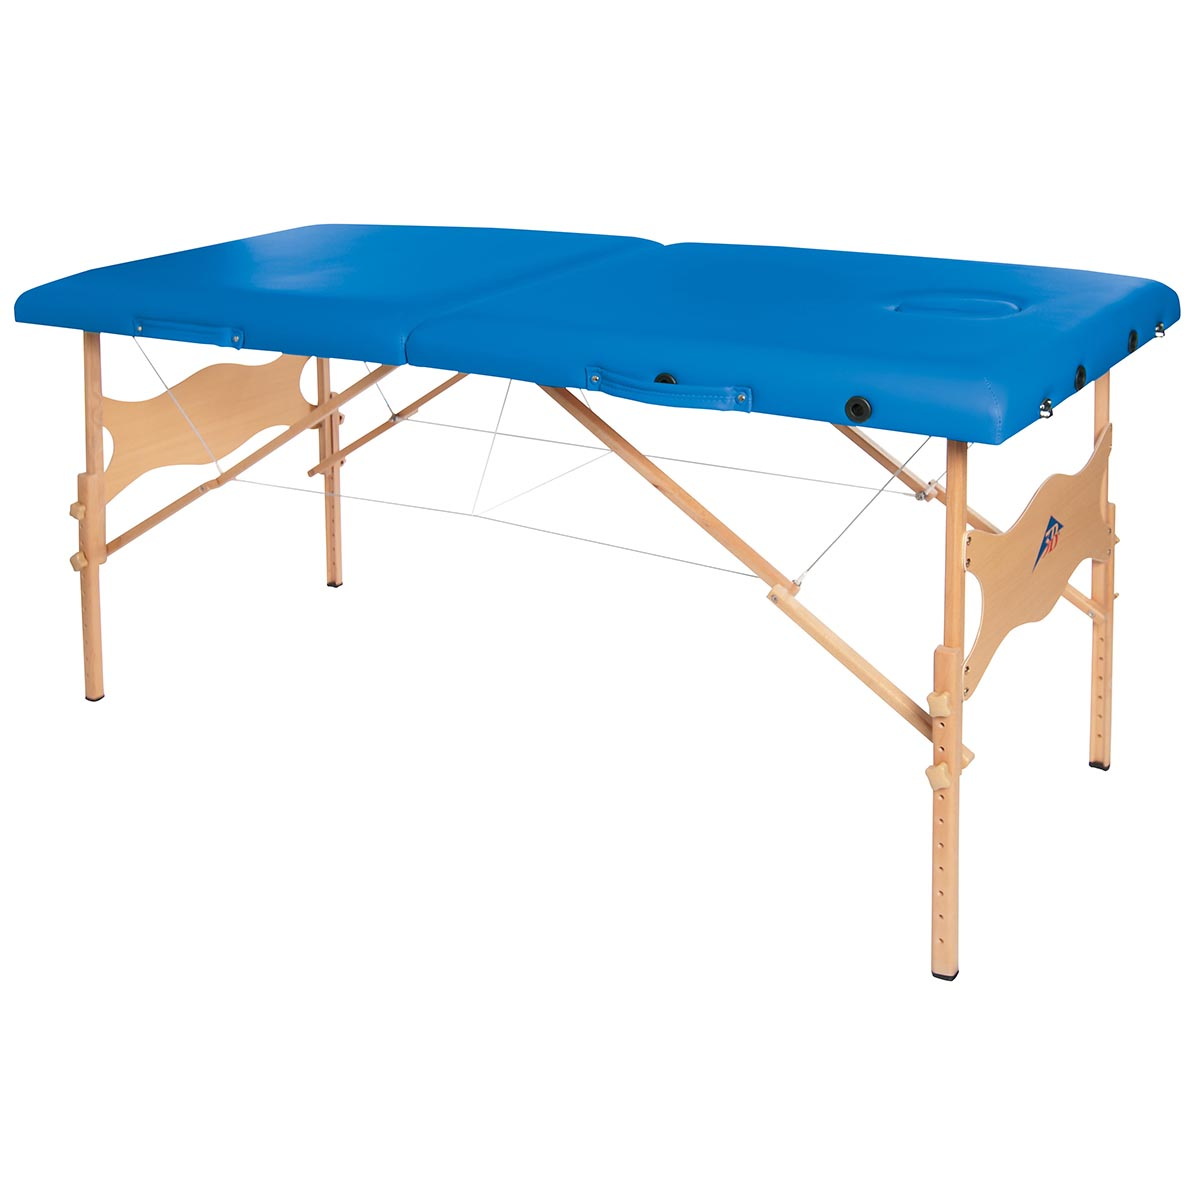 Table De Massage Pliante Kin Sith Rapie Ost Opathie Table Portable L G Re